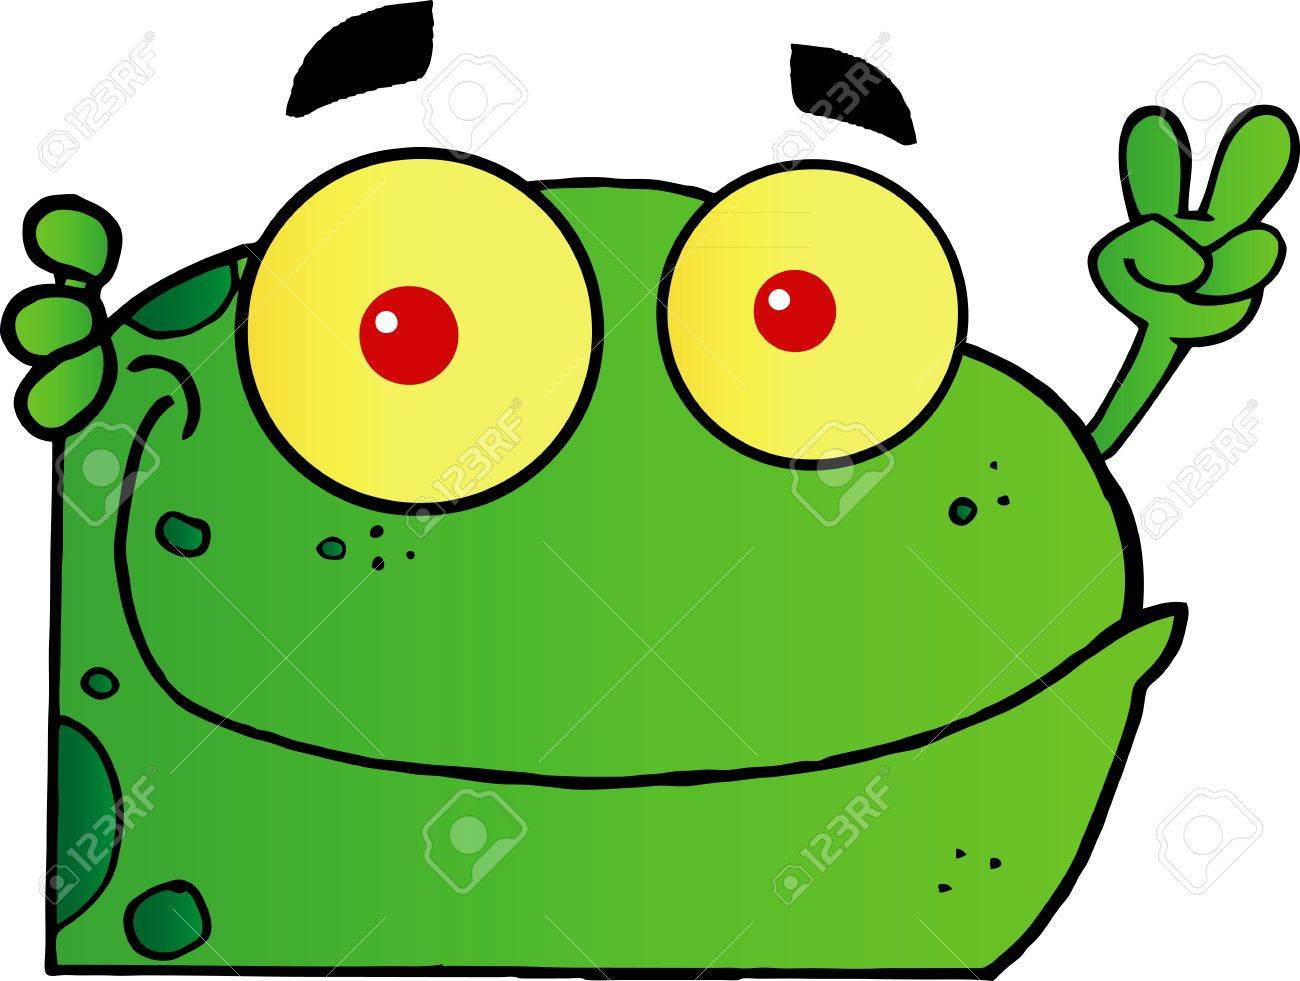 http://previews.123rf.com/images/chudtsankov/chudtsankov1201/chudtsankov120100043/12031260-Frog-Gesturing-The-Peace-Sign-With-His-Hand-Stock-Vector-cartoon-frog.jpg